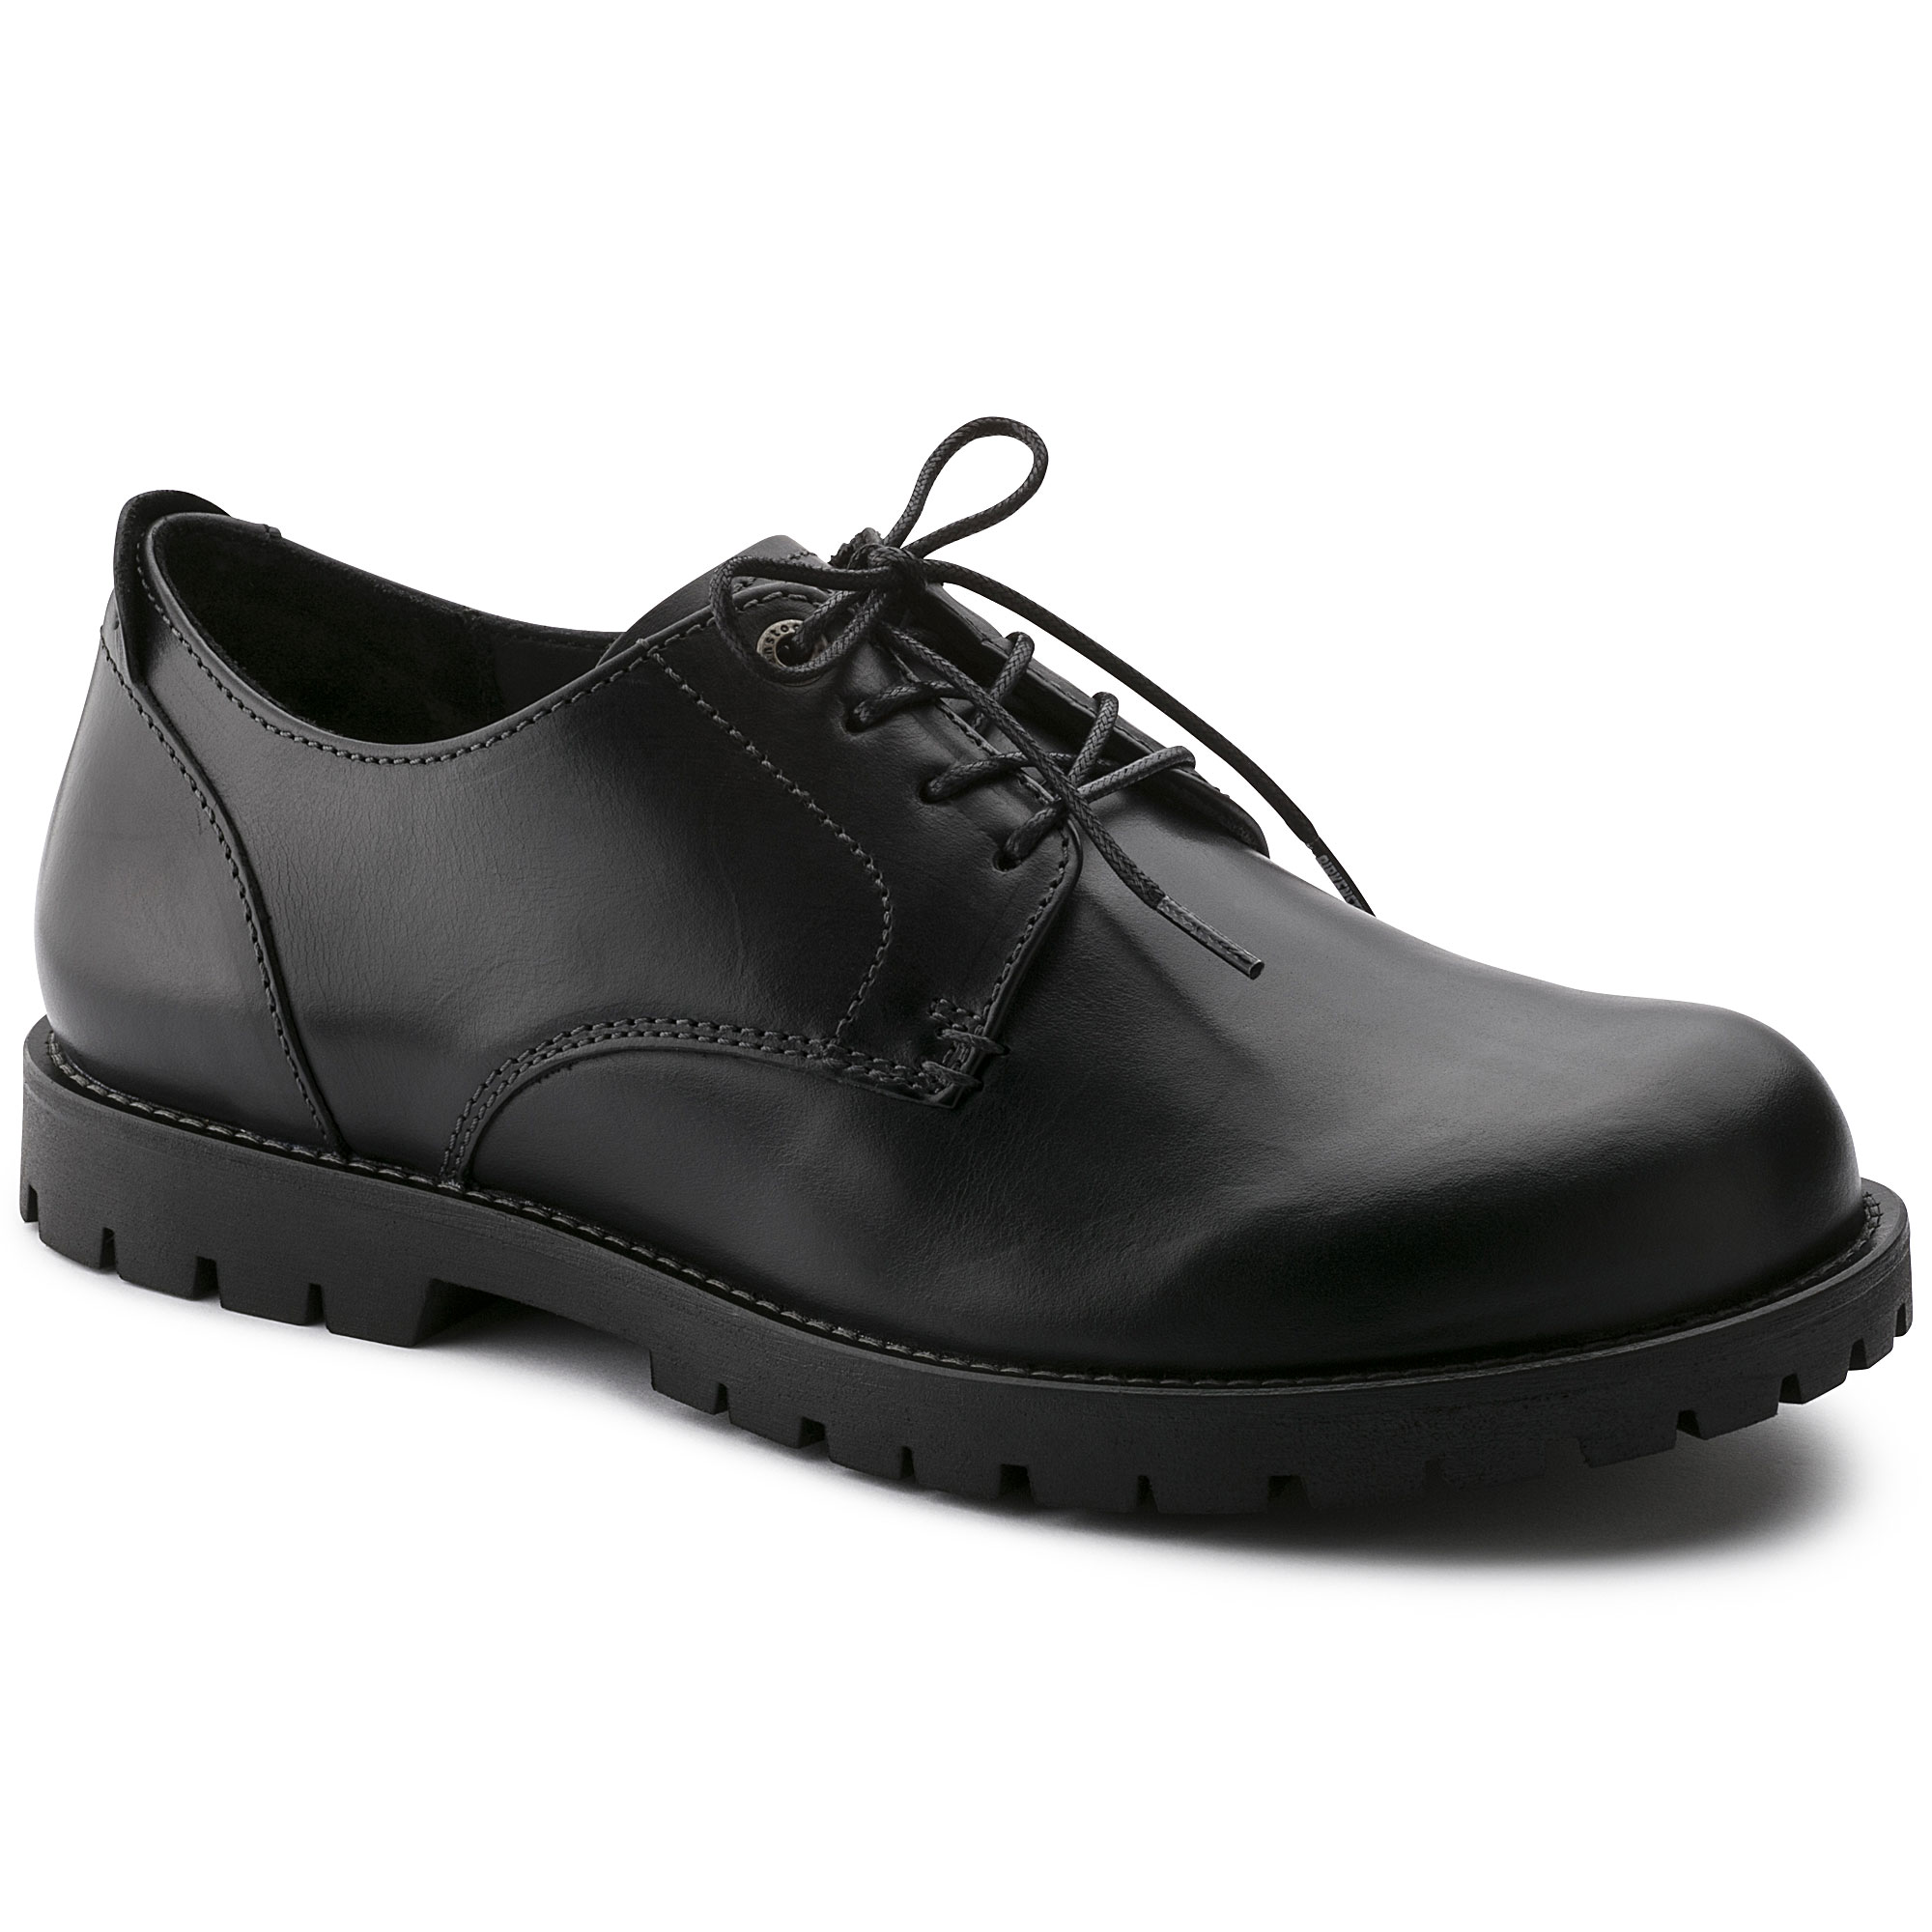 Birkenstock Derby Men's And Women's Leather Lace up Shoe